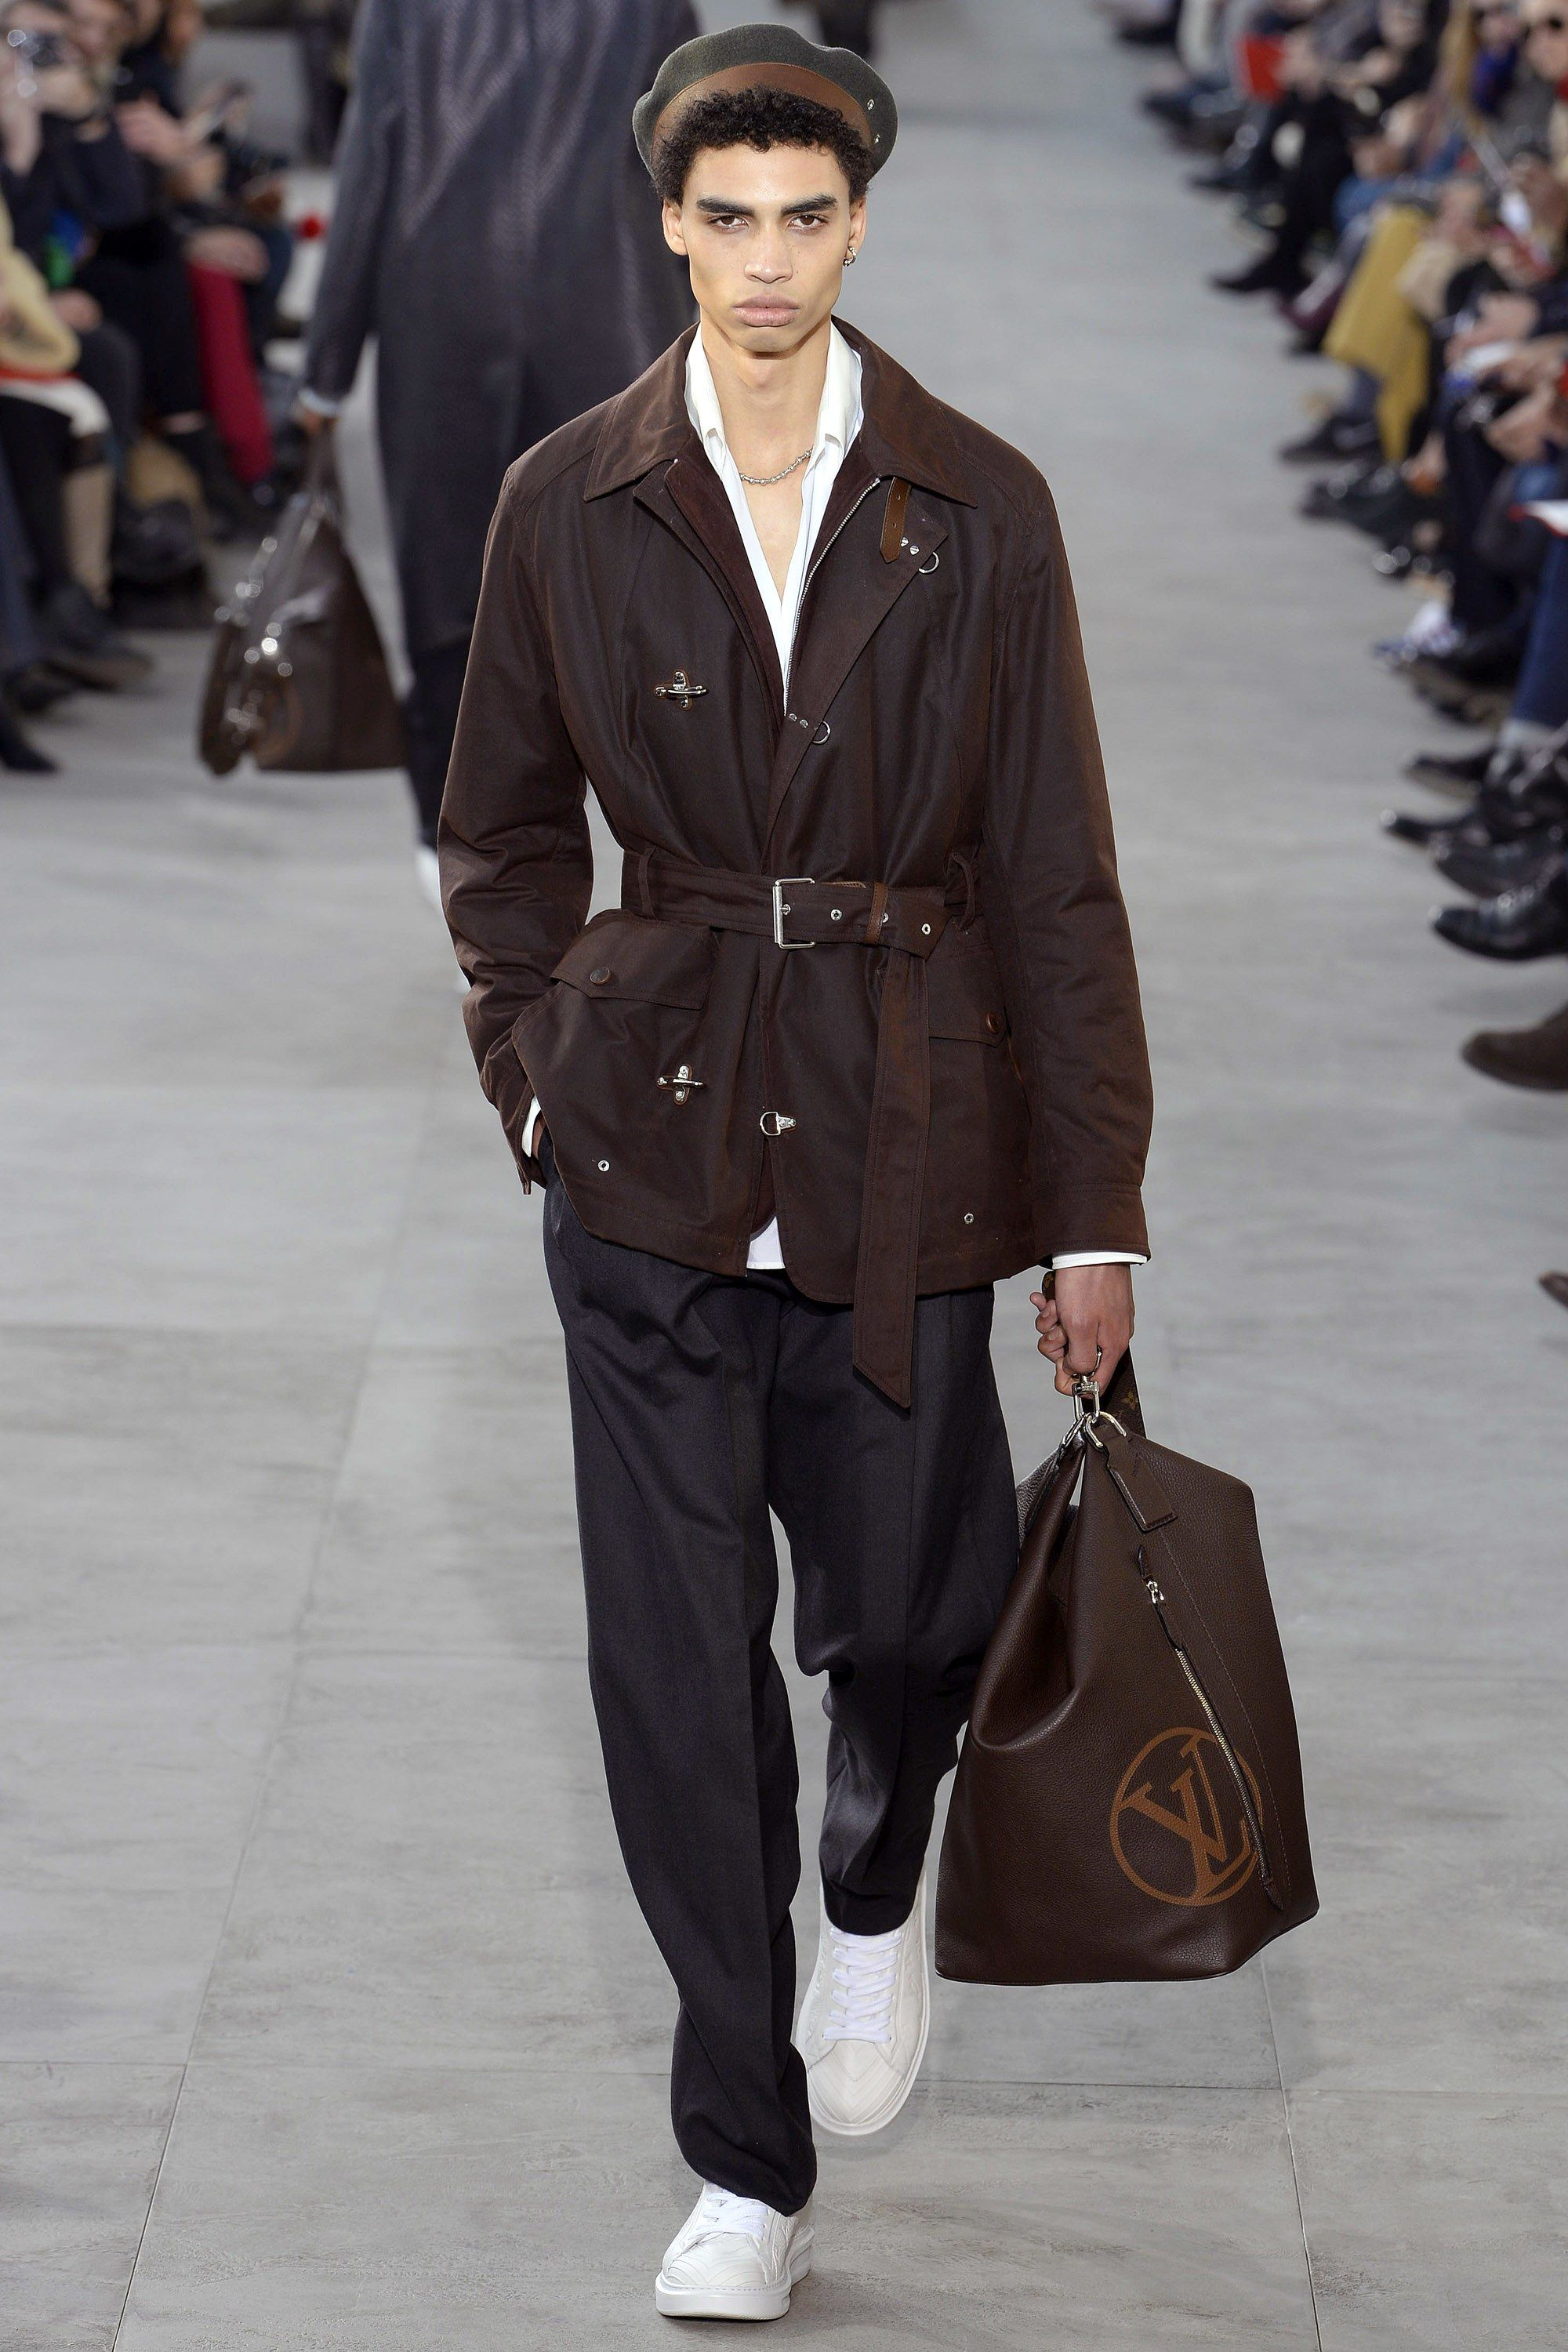 Louis Vuitton Fall 2017 Menswear Collection Photos - Vogue c006aa53f7d1e